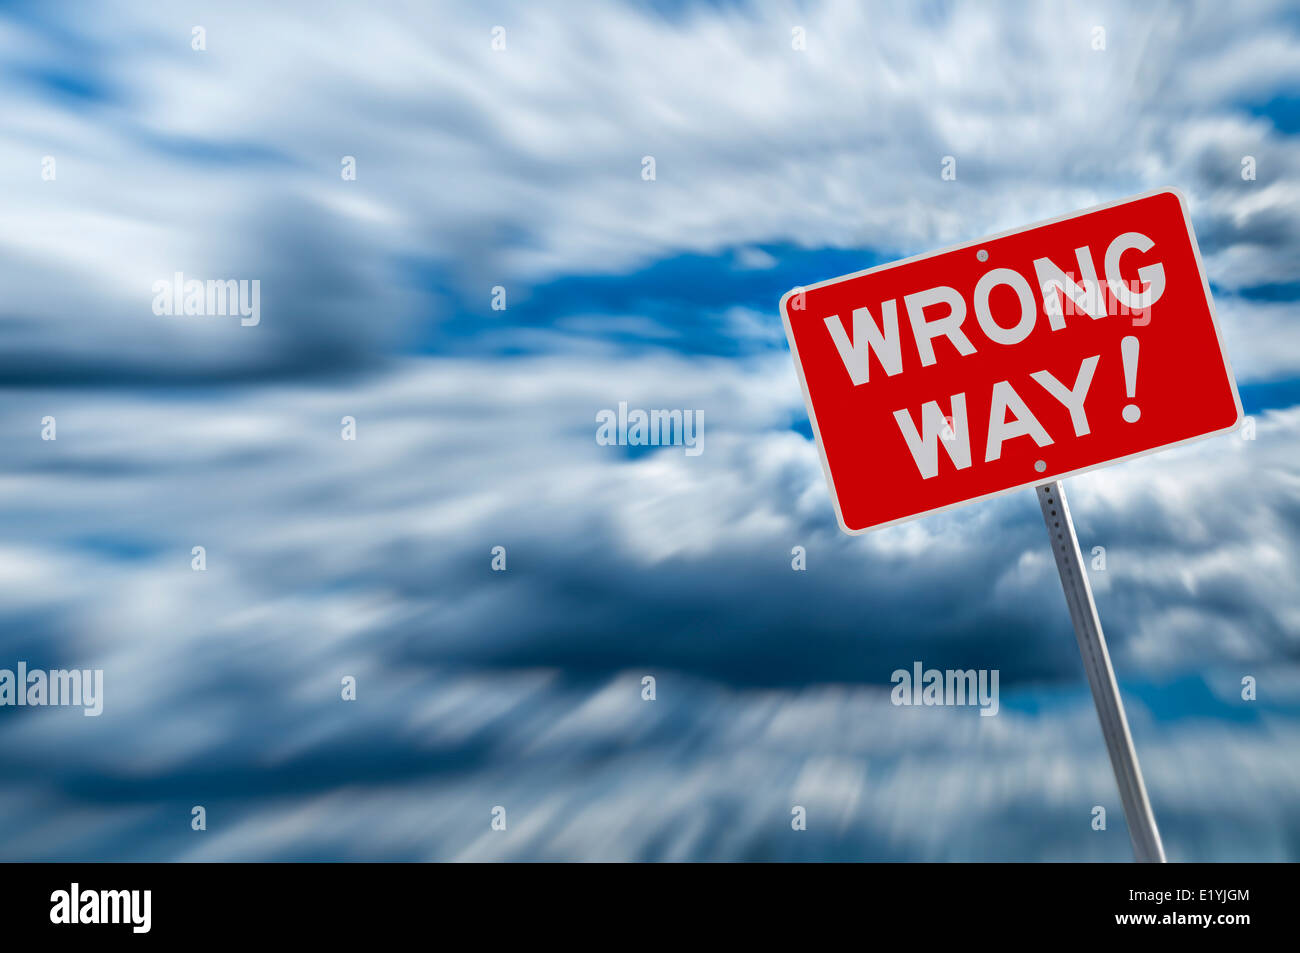 Wrong way warning sign backed by cloudy sky - Stock Image